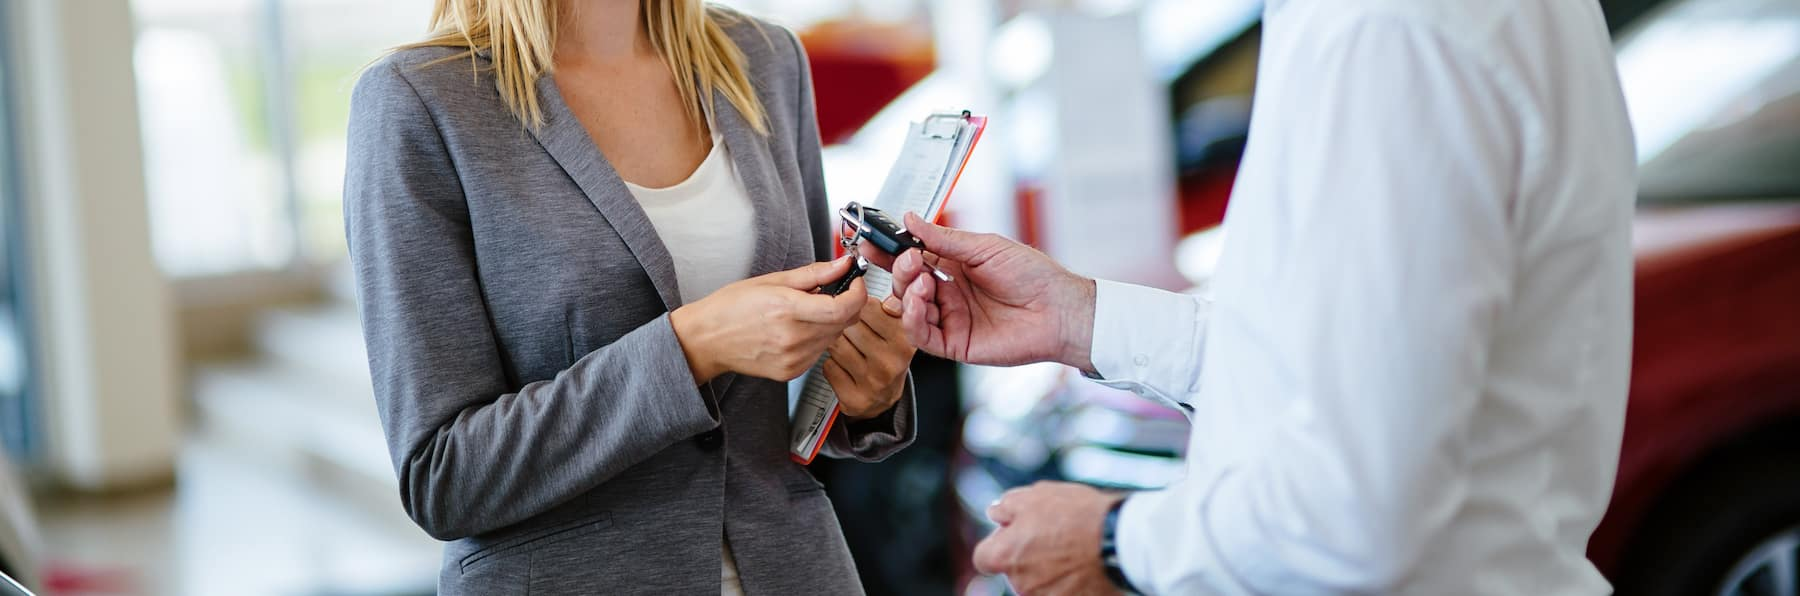 Best Time to Trade in a Vehicle at Boch Auto Group | Man handing car key to sales agent